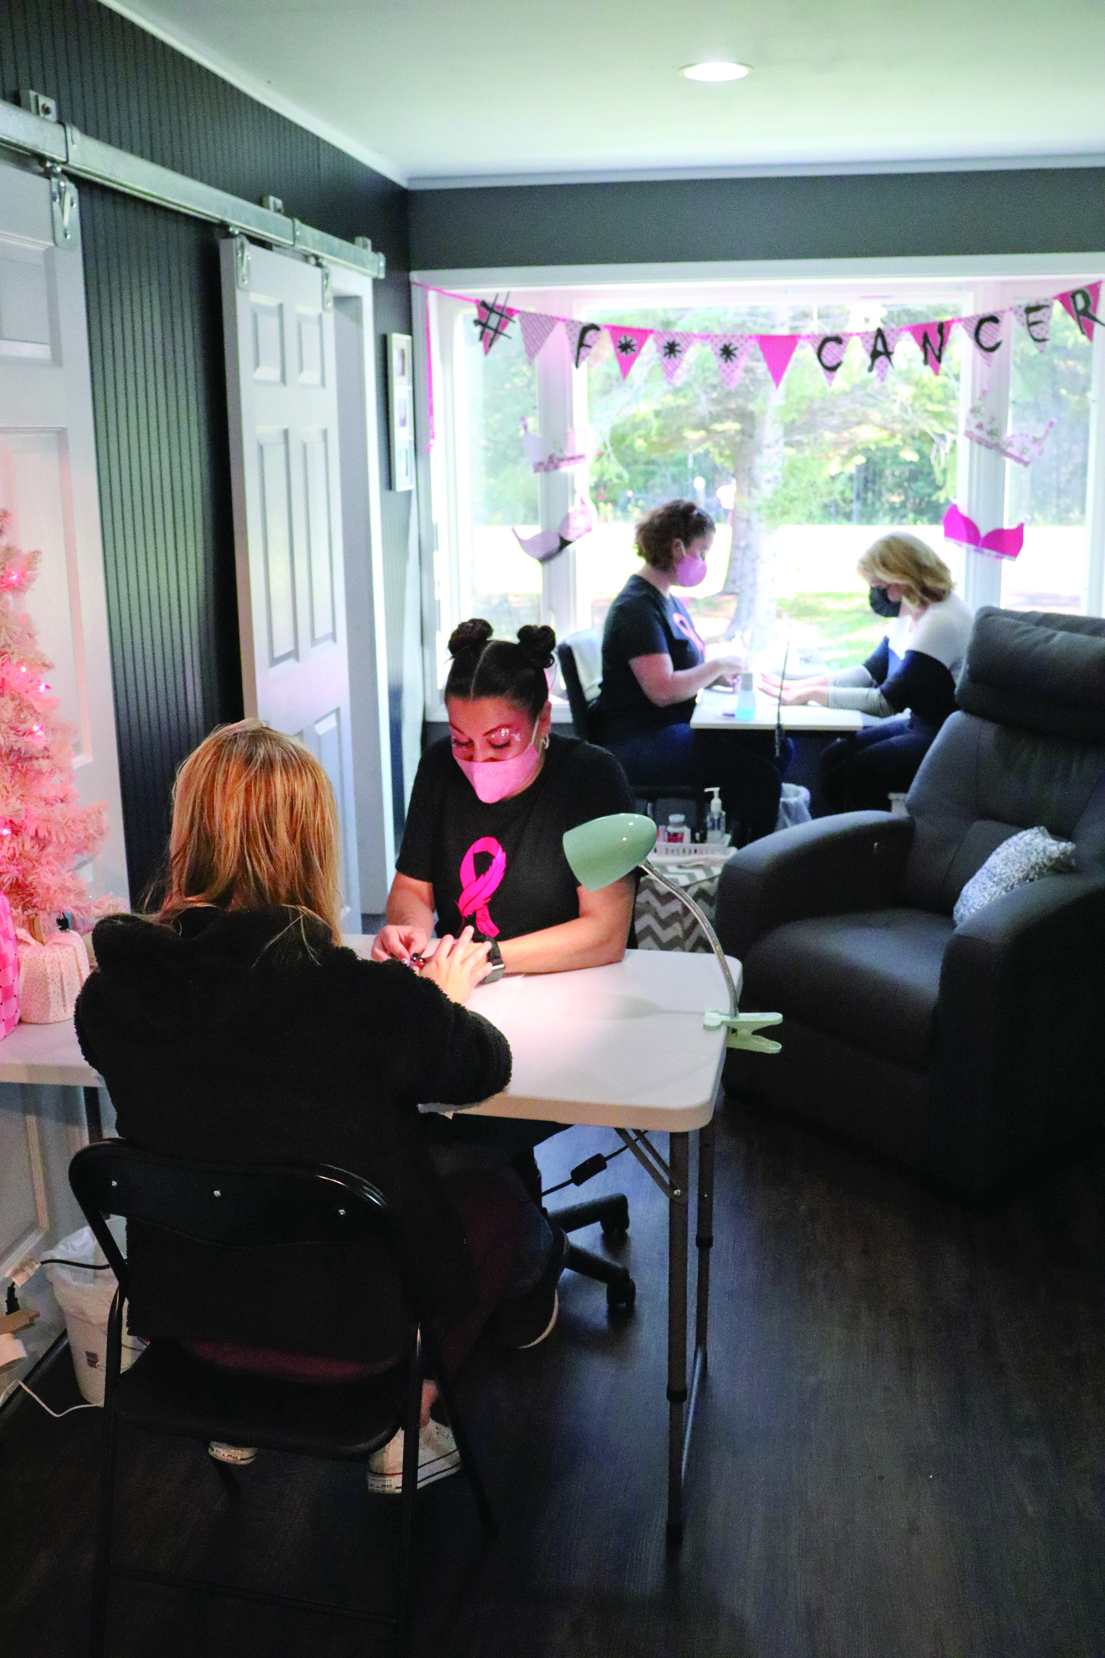 """Estheticians hold """"Pretty in Pink"""" manicure day for breast cancer research"""